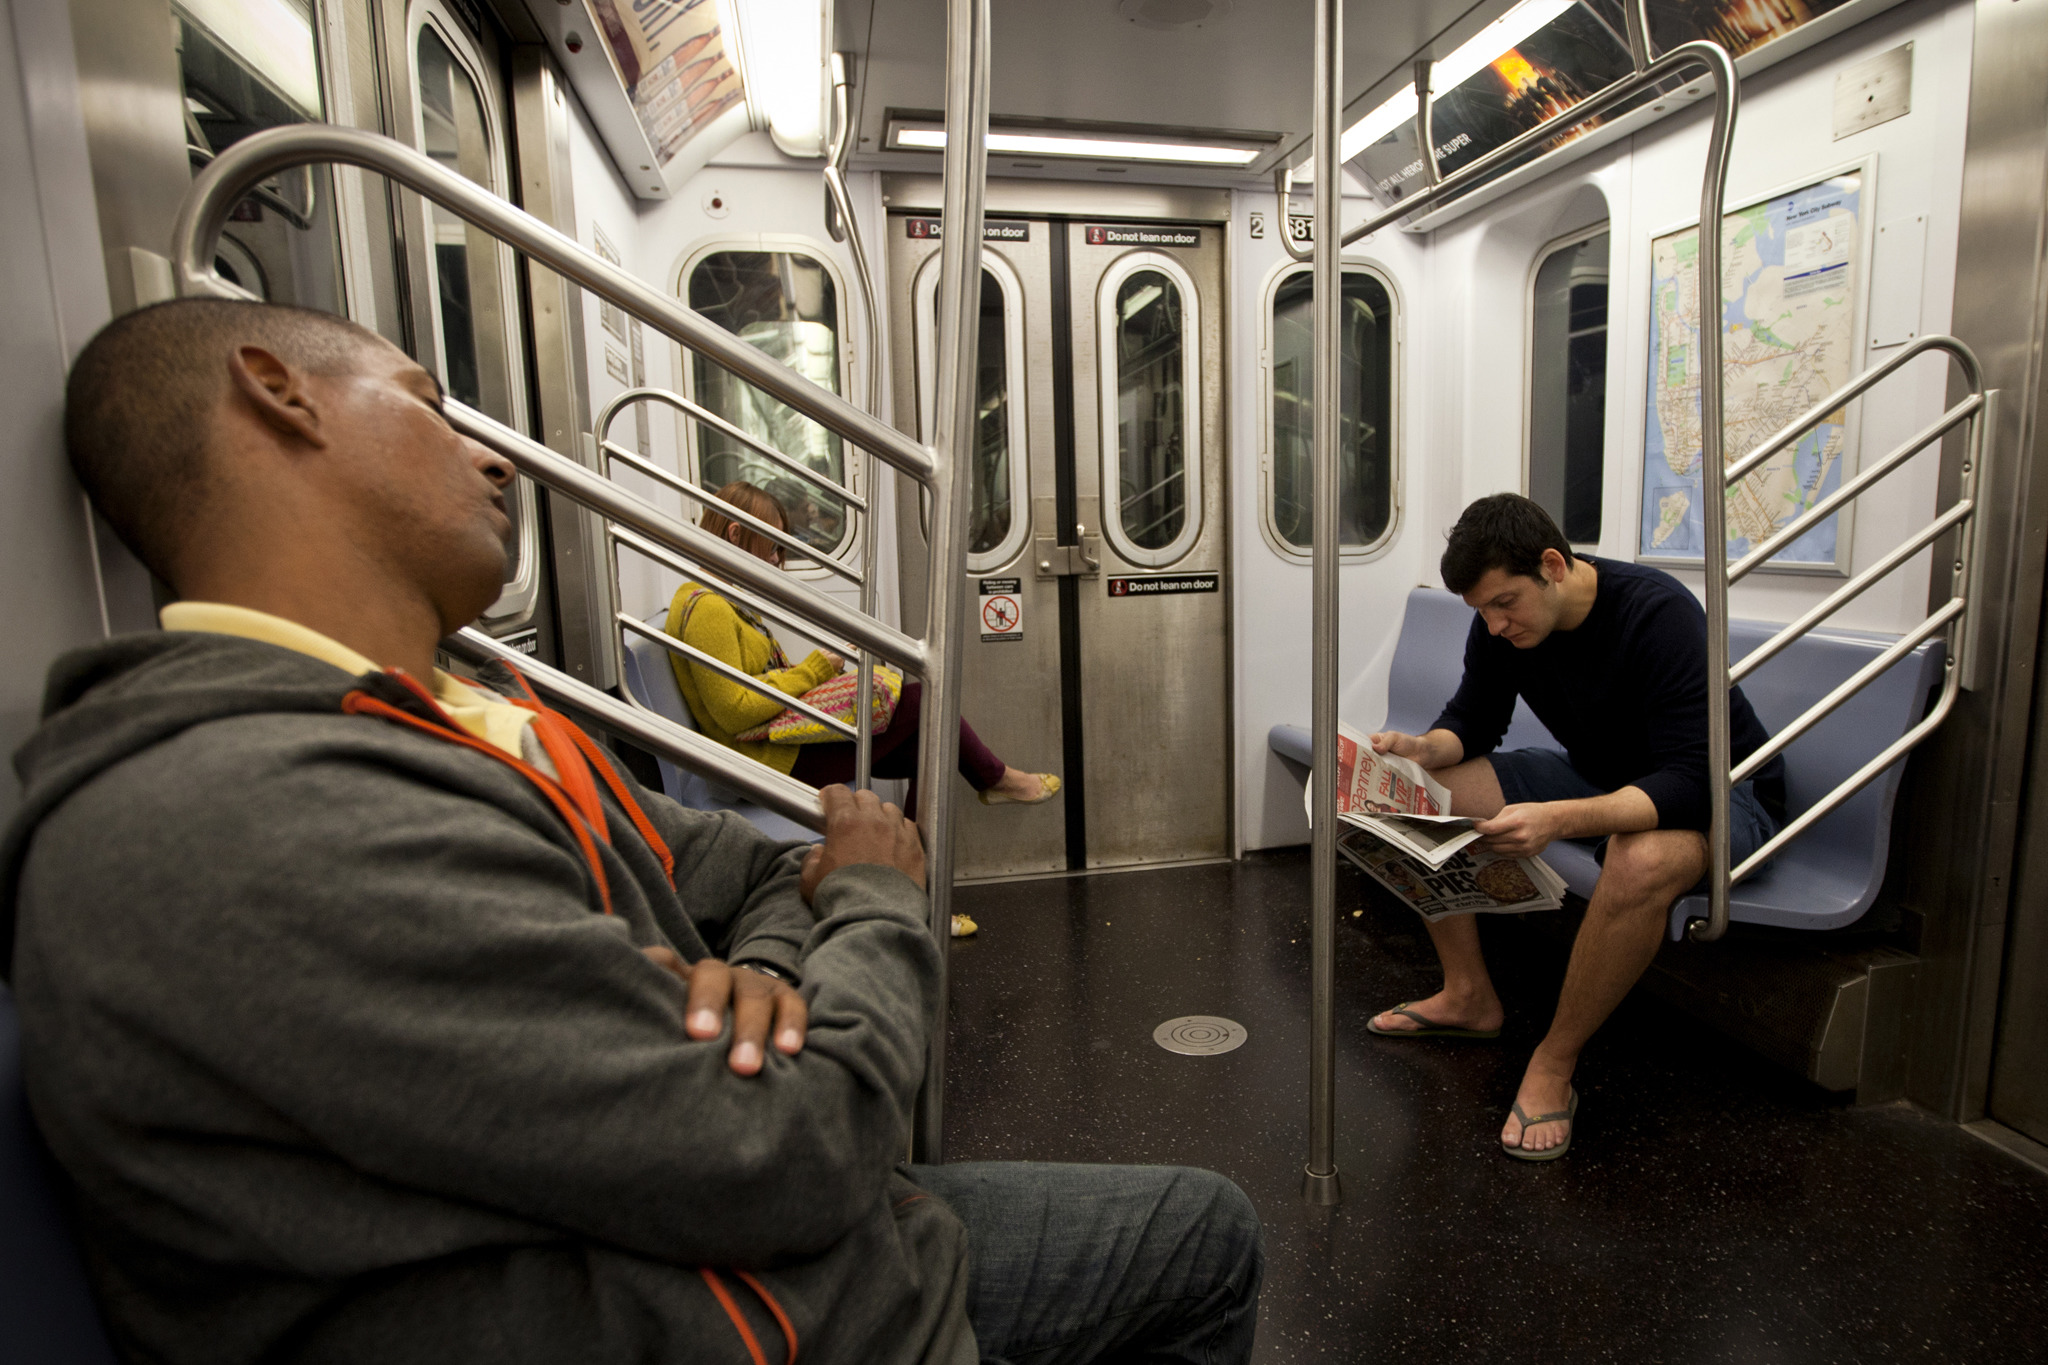 People really need to stop hogging so much space on the subway